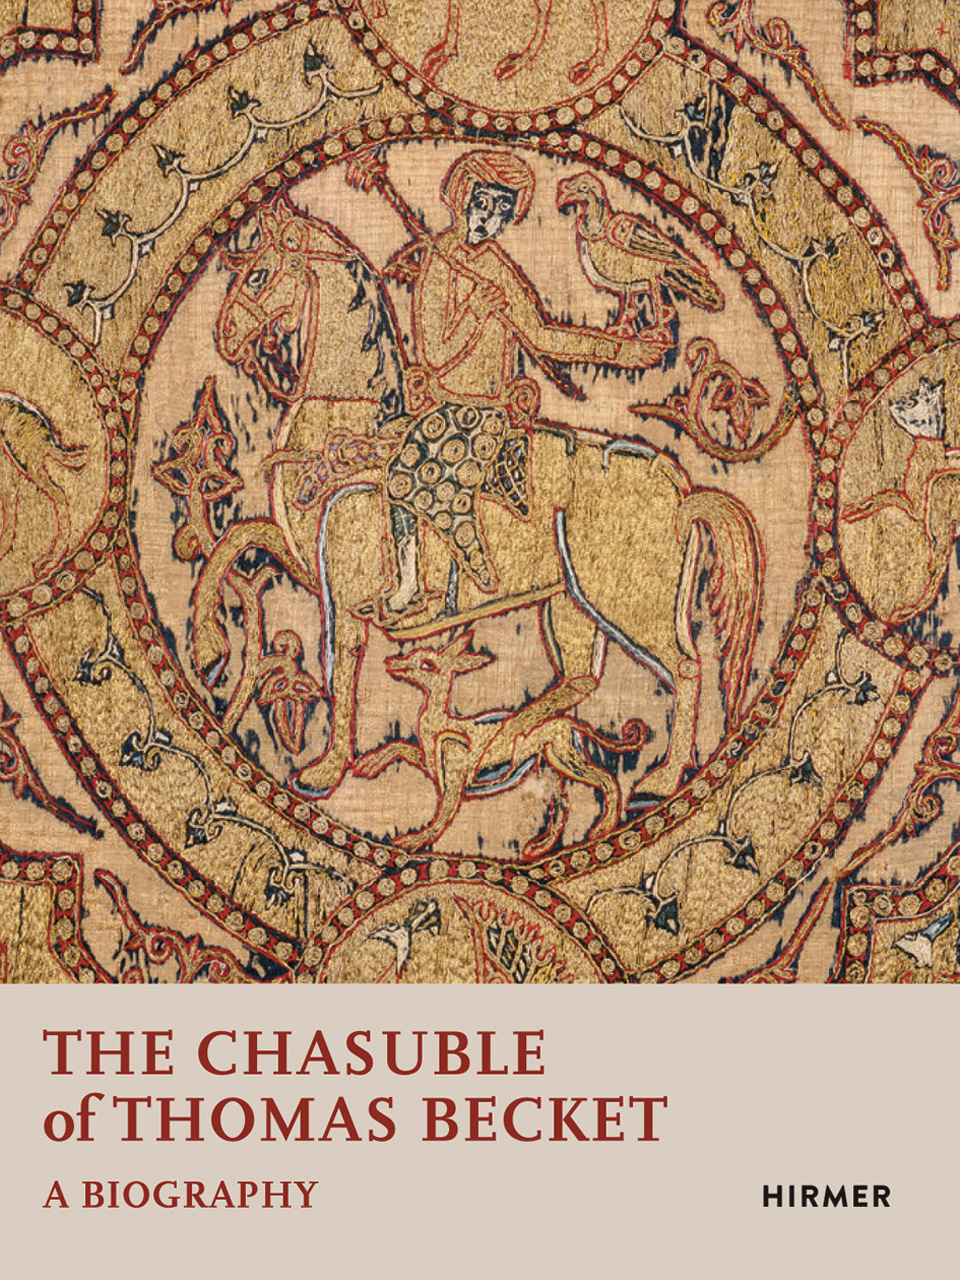 The Chasuble of Thomas Becket: A Biography